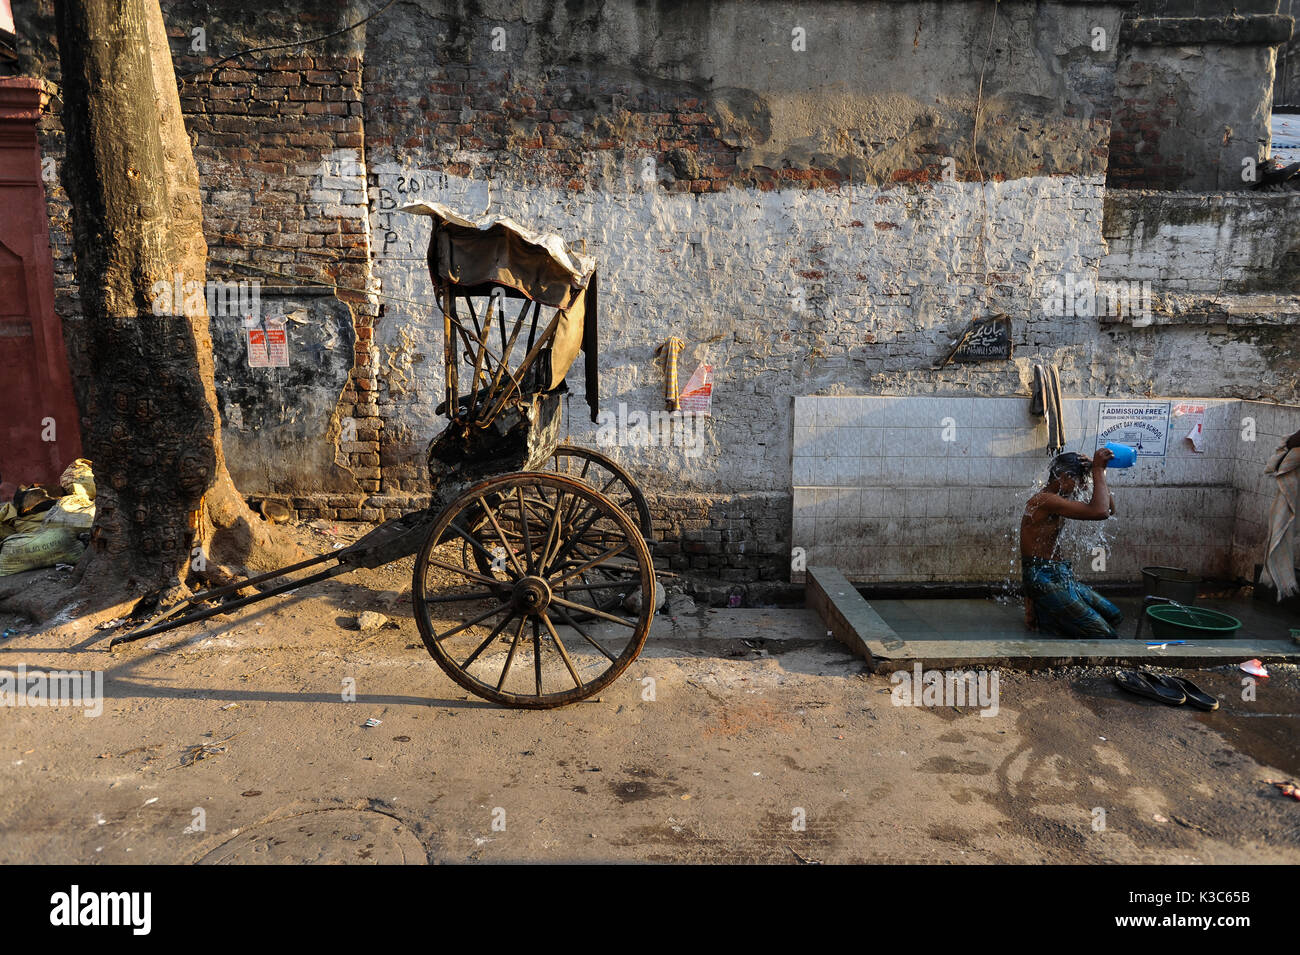 24.02.2011, Kolkata, West Bengal, India, Asia - A rickshaw puller showers next to his wooden rickshaw at a roadside - Stock Image